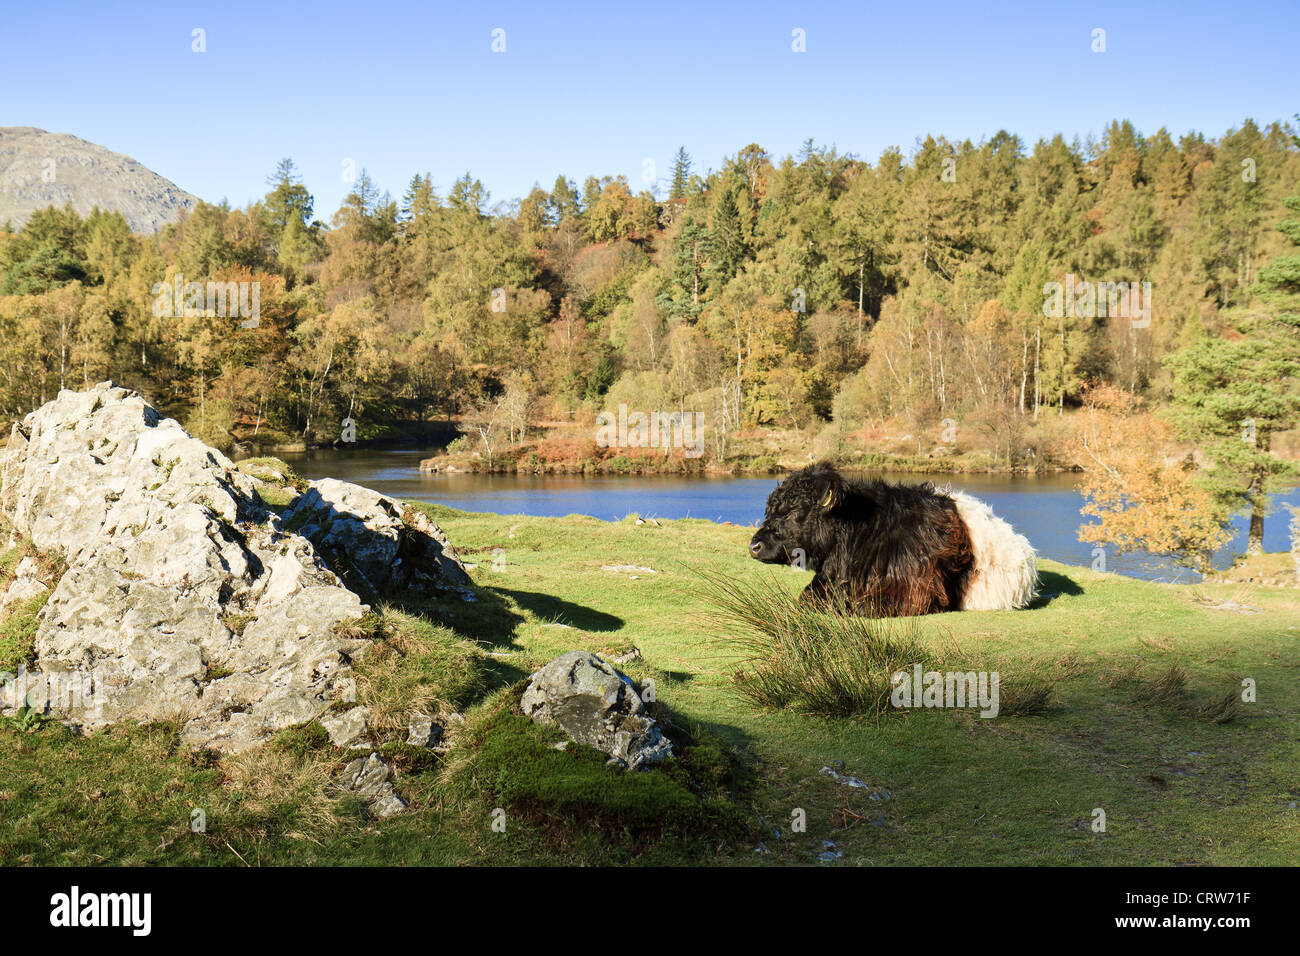 UK Cumbria  Cattle At Tarn Hows - Stock Image